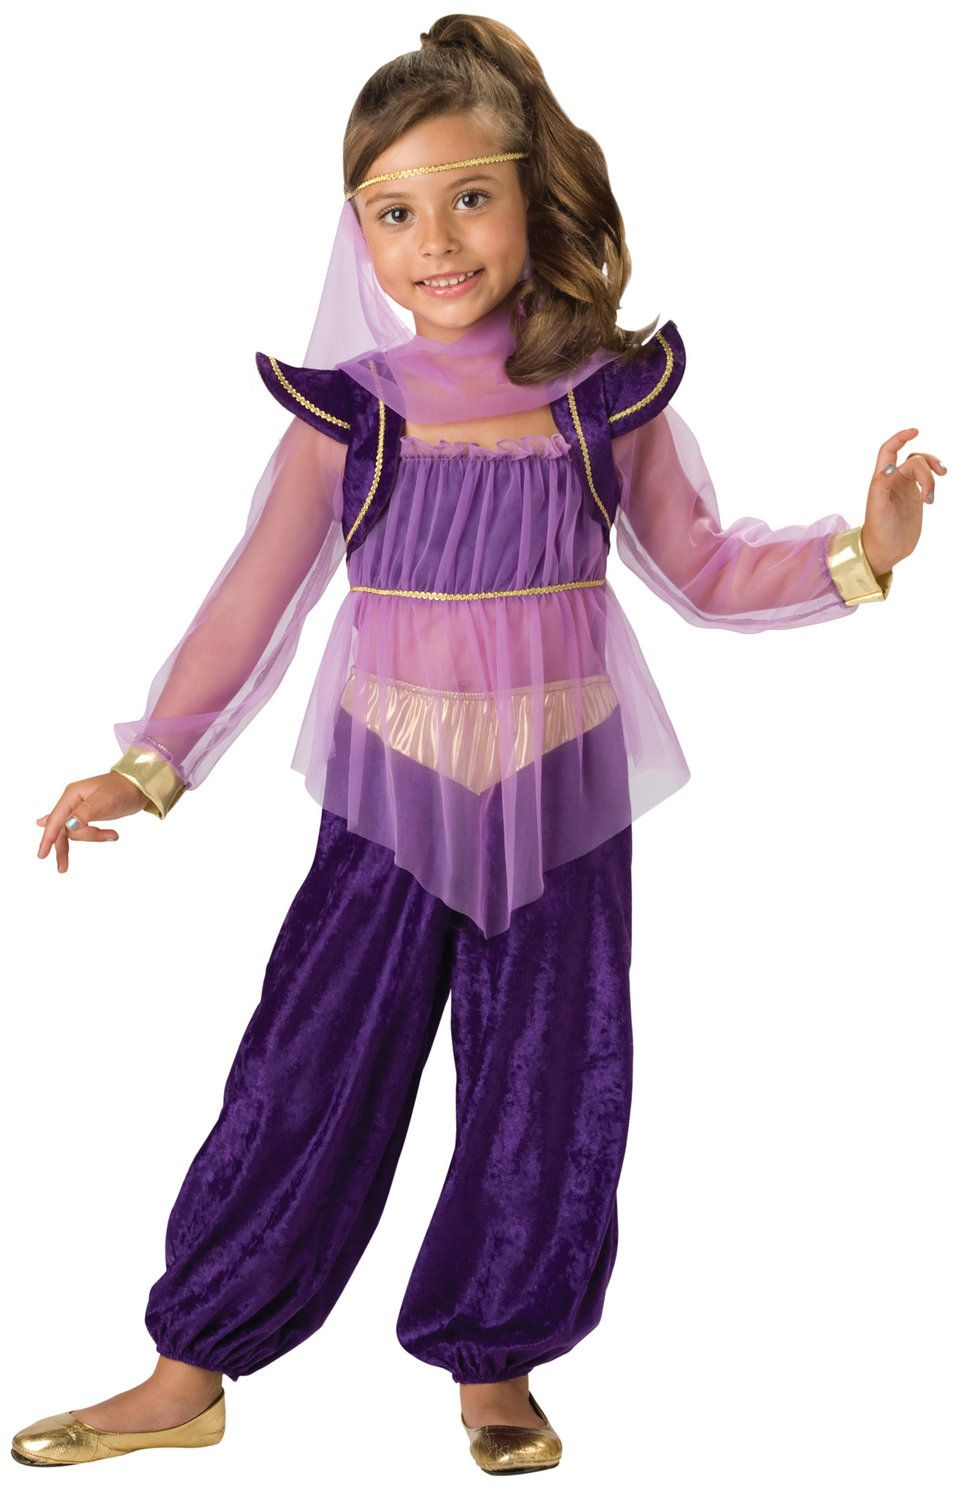 Girls Dreamy Genie Kids Costume - Mr. Costumes | Holiday outfits ...